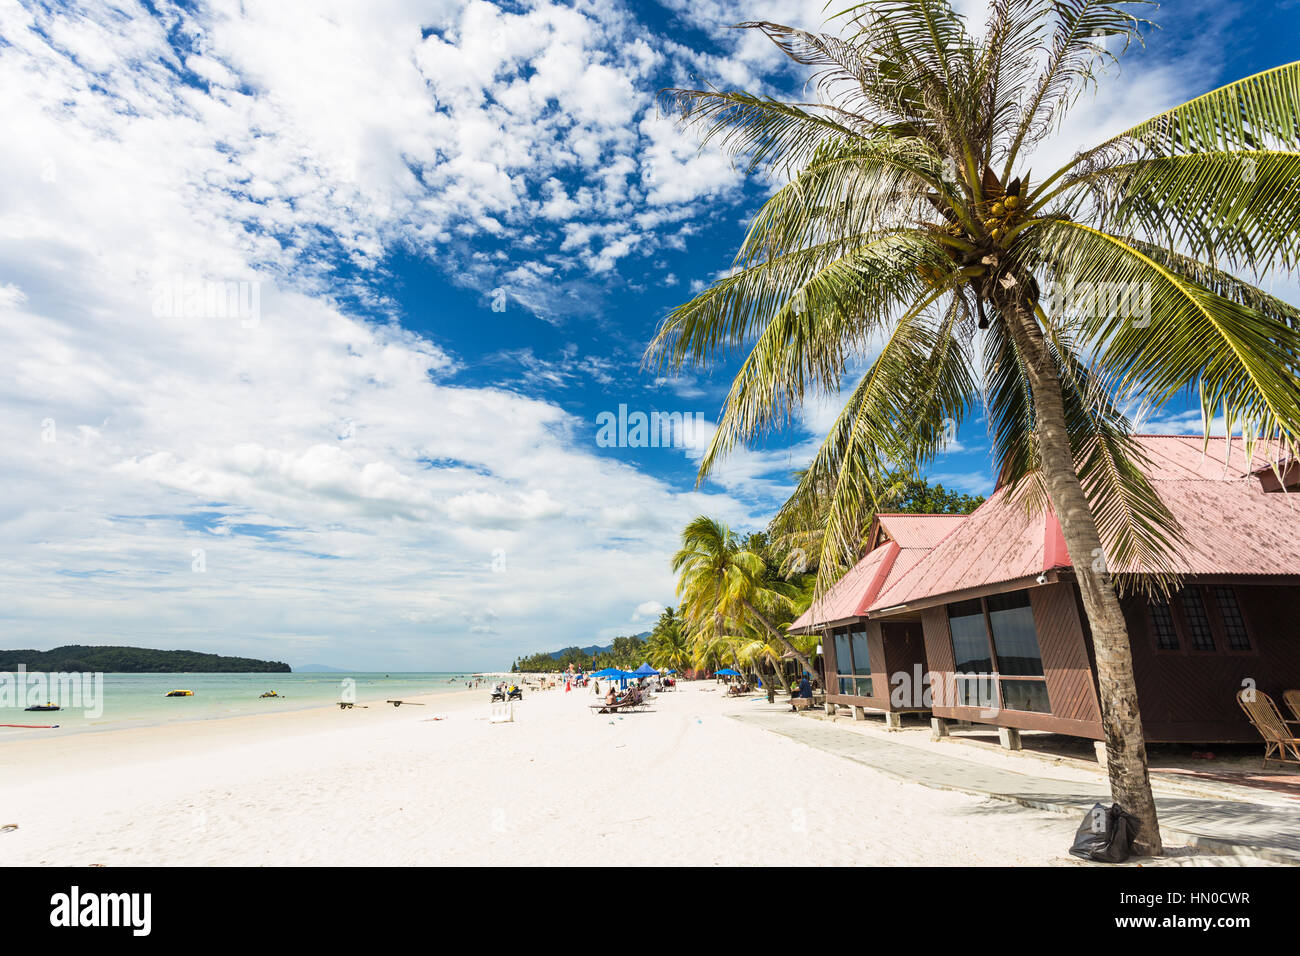 Palm tree and bungalow on Pantai Cenang, the most popular beach on the Langkawi island along the Andaman sea in - Stock Image